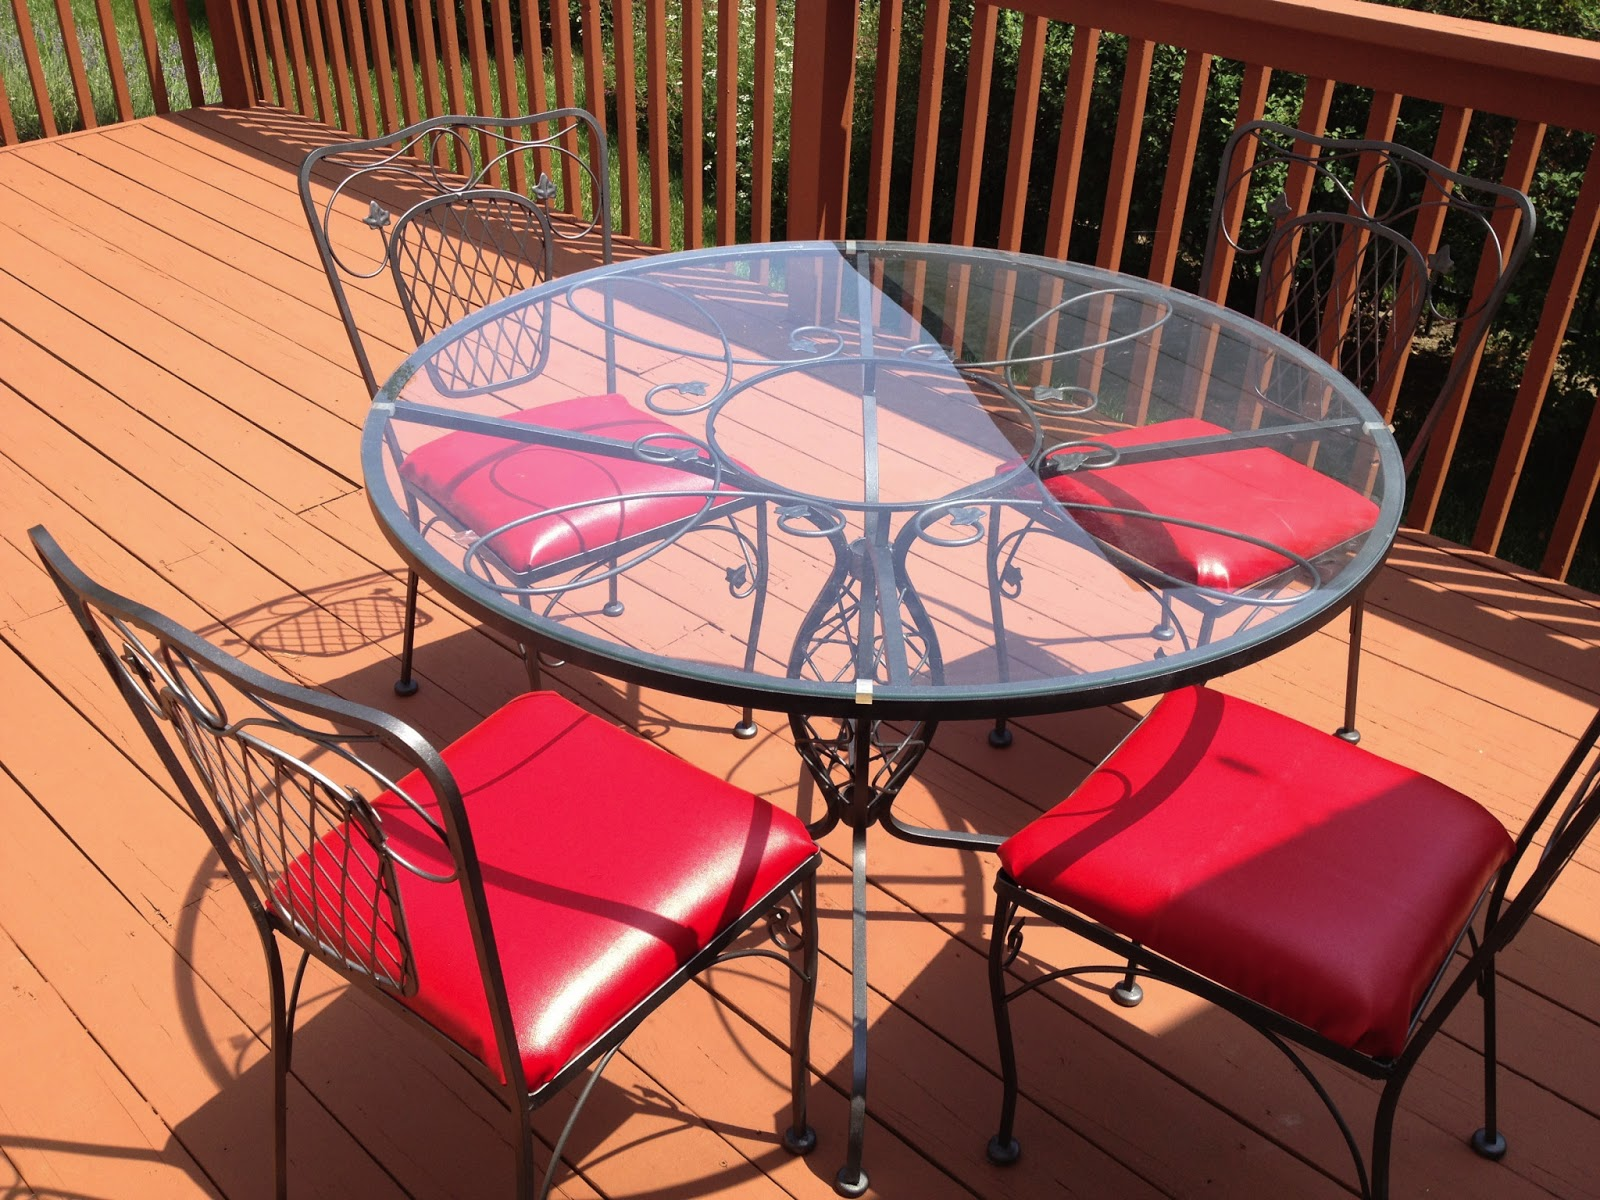 Reupholster And Repaint Patio Furniture With Rustoleum Universal Metallic  Paint